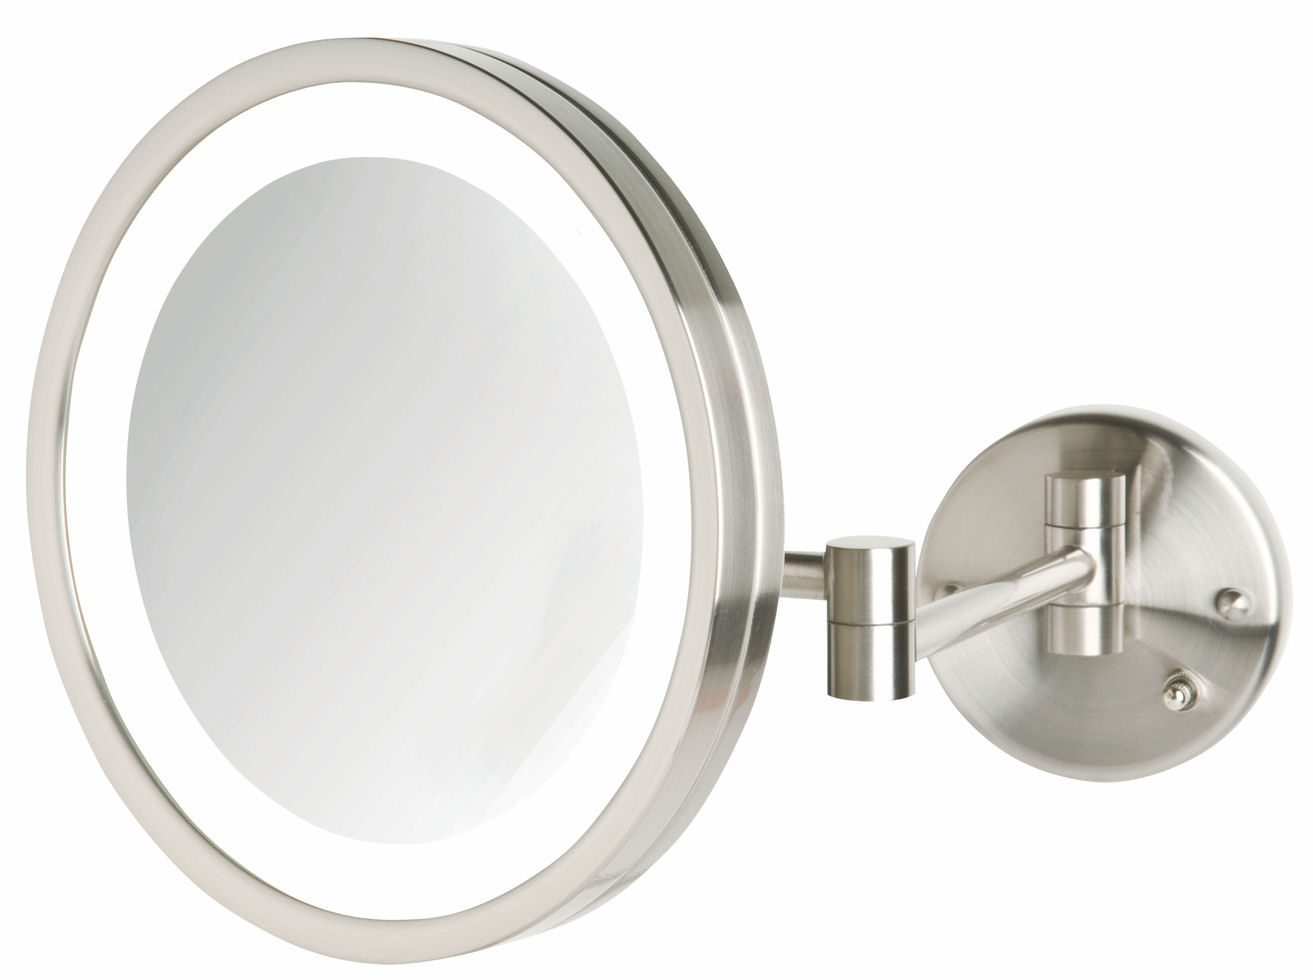 Wall Mounted Lighted Magnifying Mirror 10x